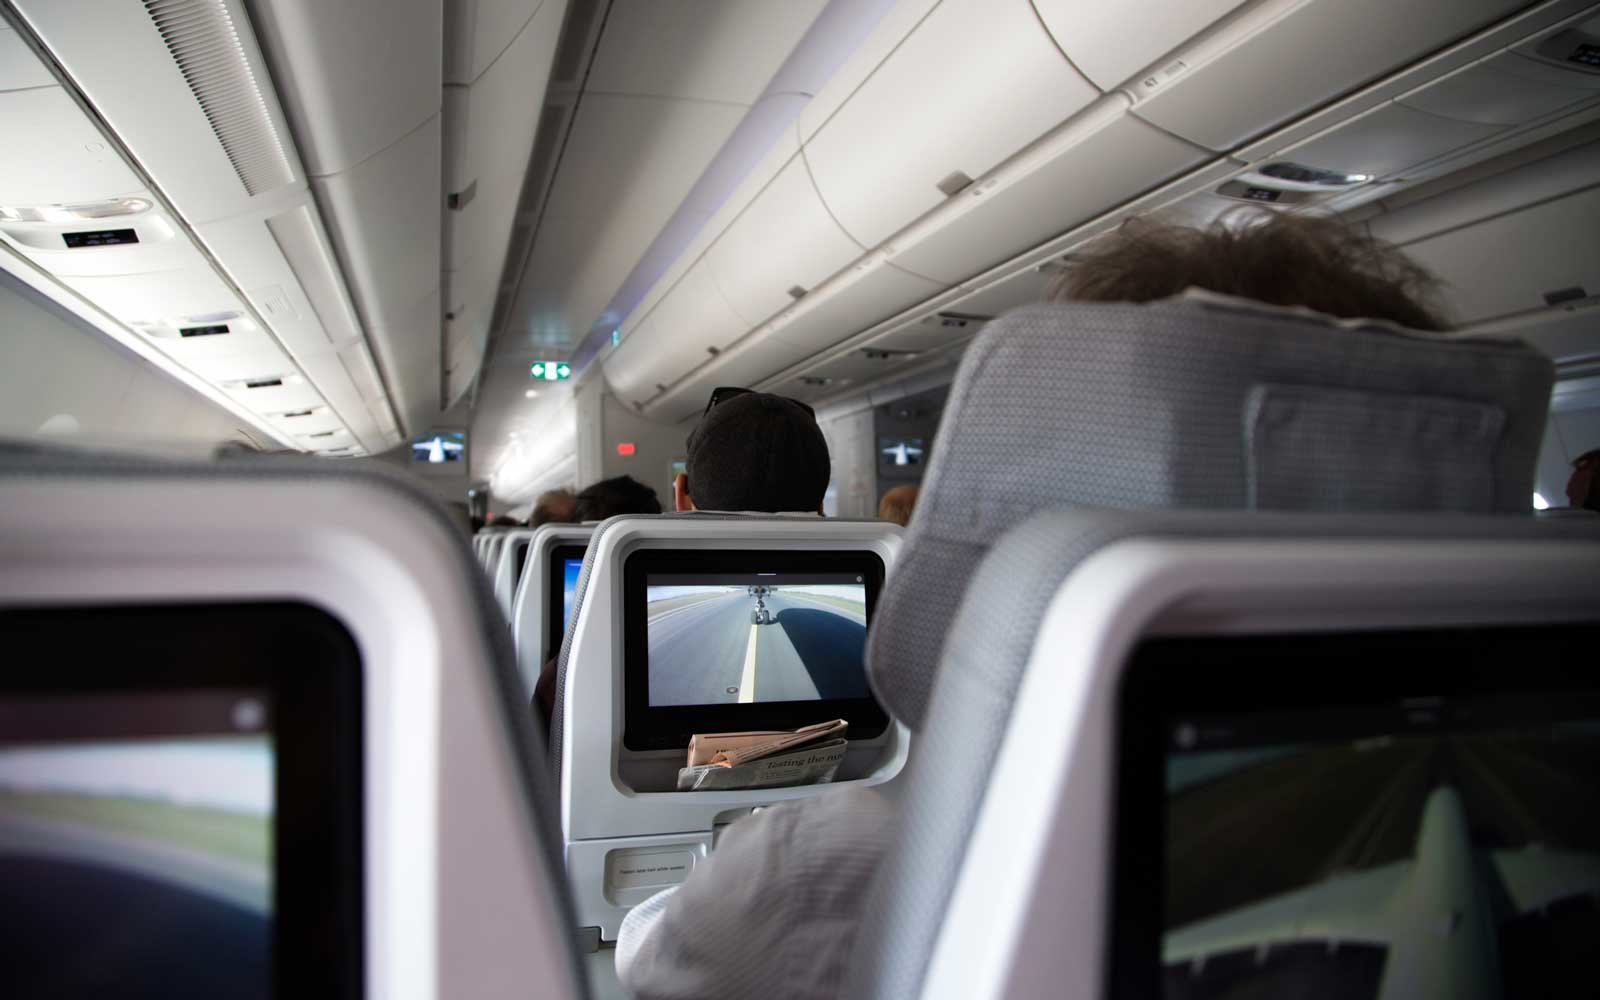 Farting Passenger Forces Plane To Make Emergency Landing